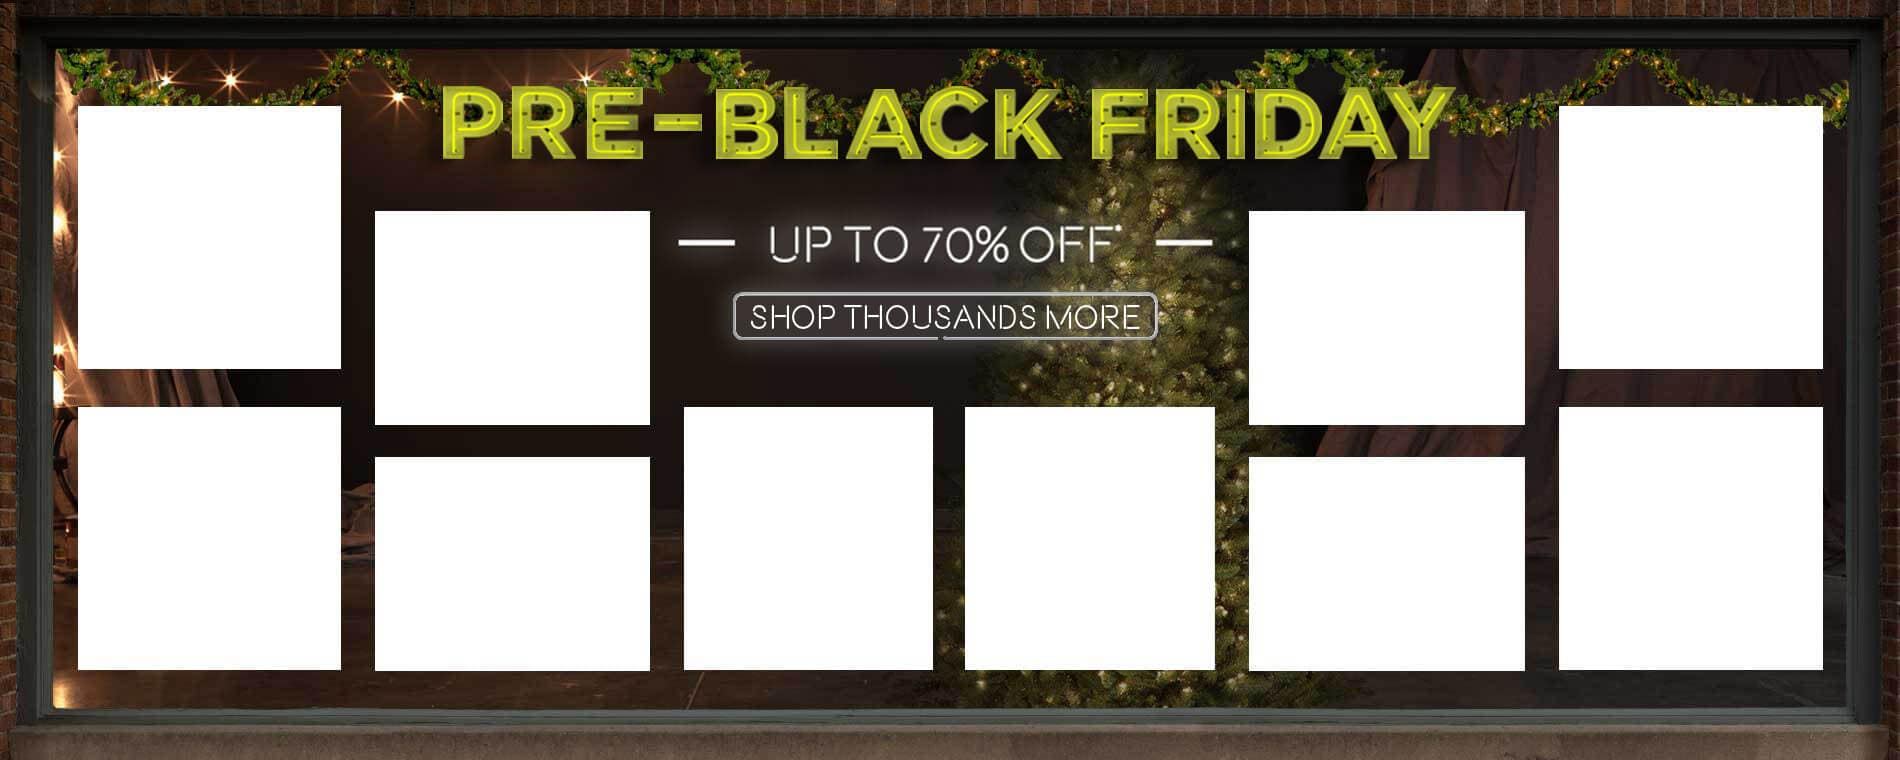 Pre-Black Friday. Up to 70% Off.